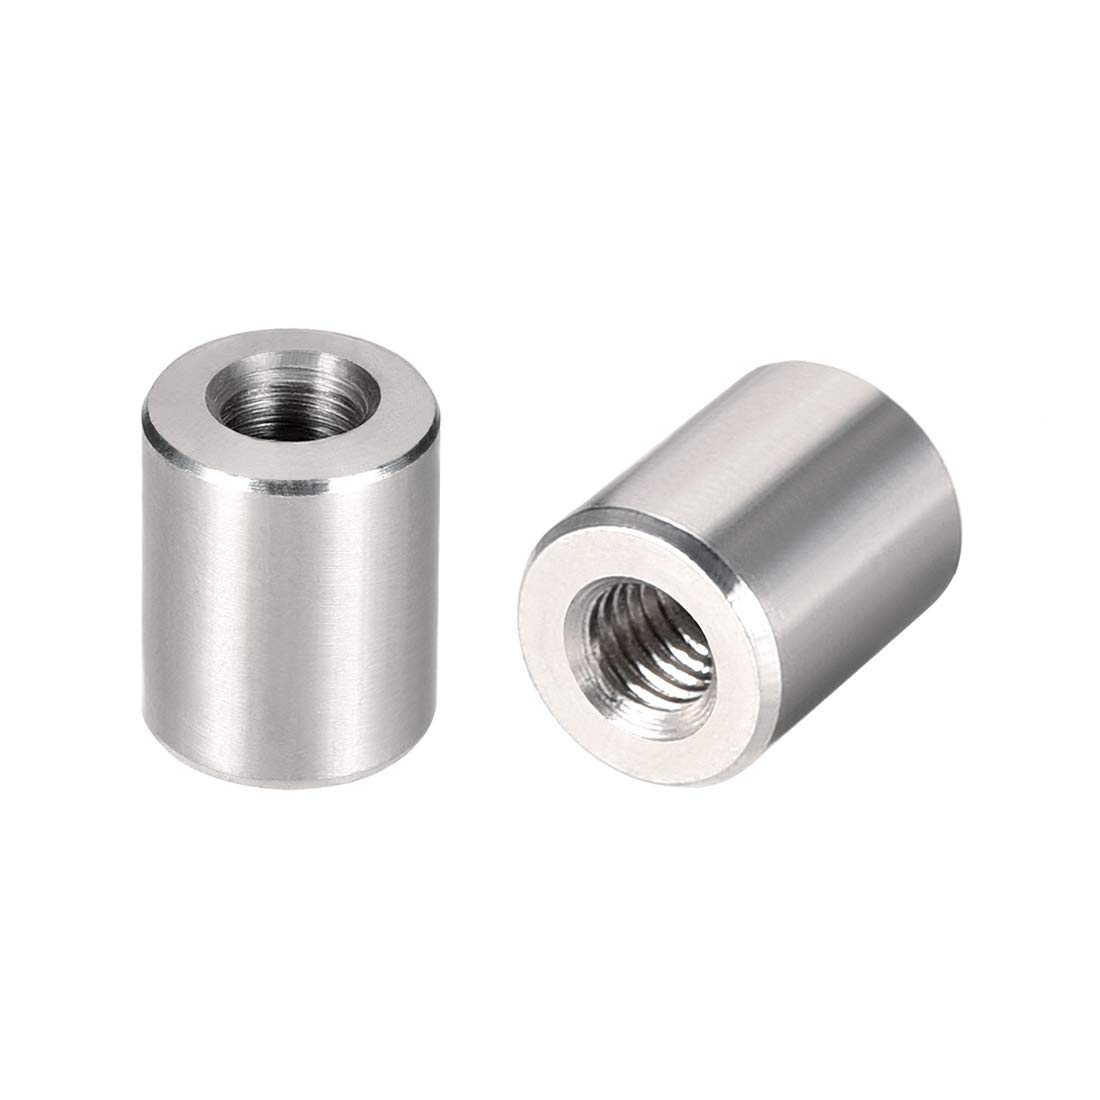 M5x12mm Height Sleeve Rod bar Stud Nut Stainless Steel 304 uxcell Round Connector Nuts Pack of 10